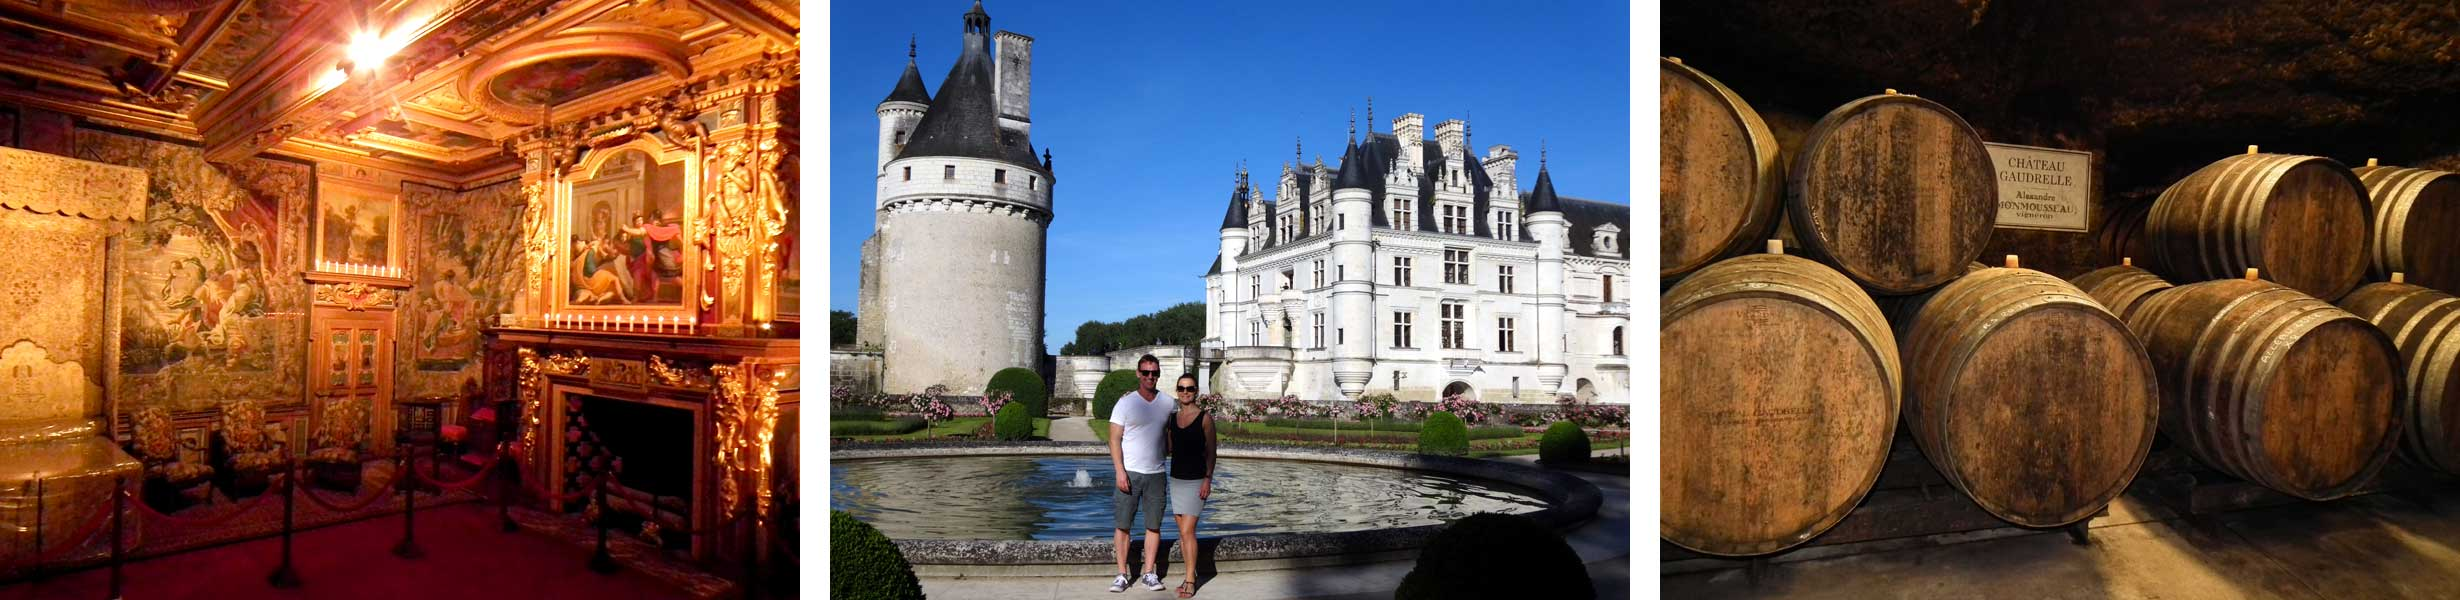 Cheverny Chenonceau and wine